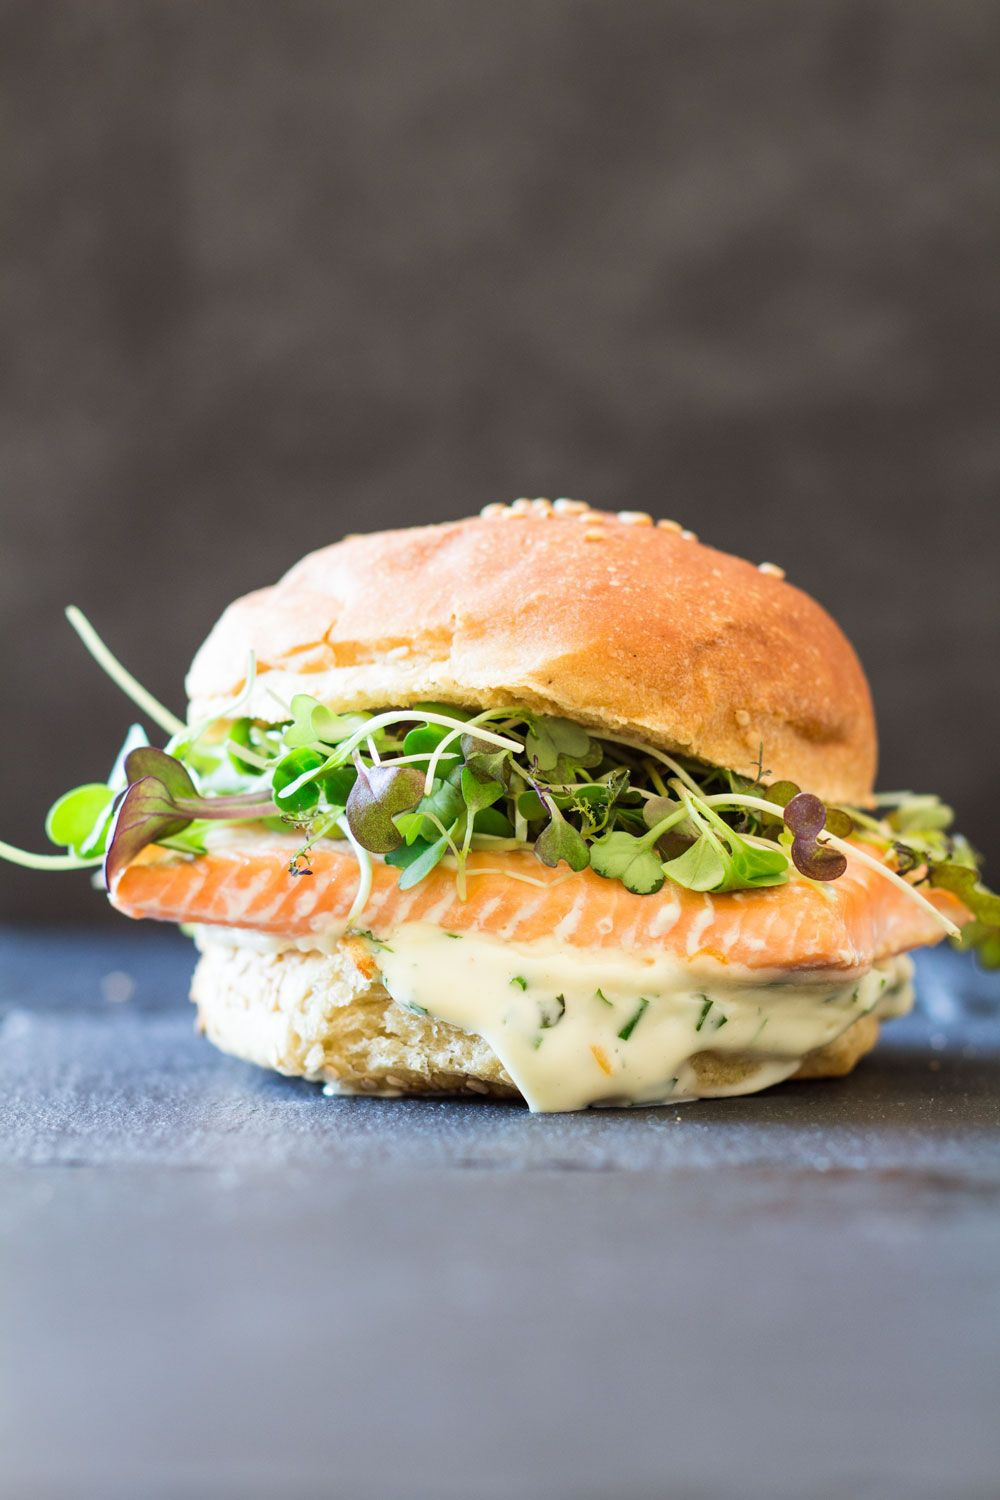 A 20 Minute Prep Healthy Fish Burger That Will Knock You Off Your